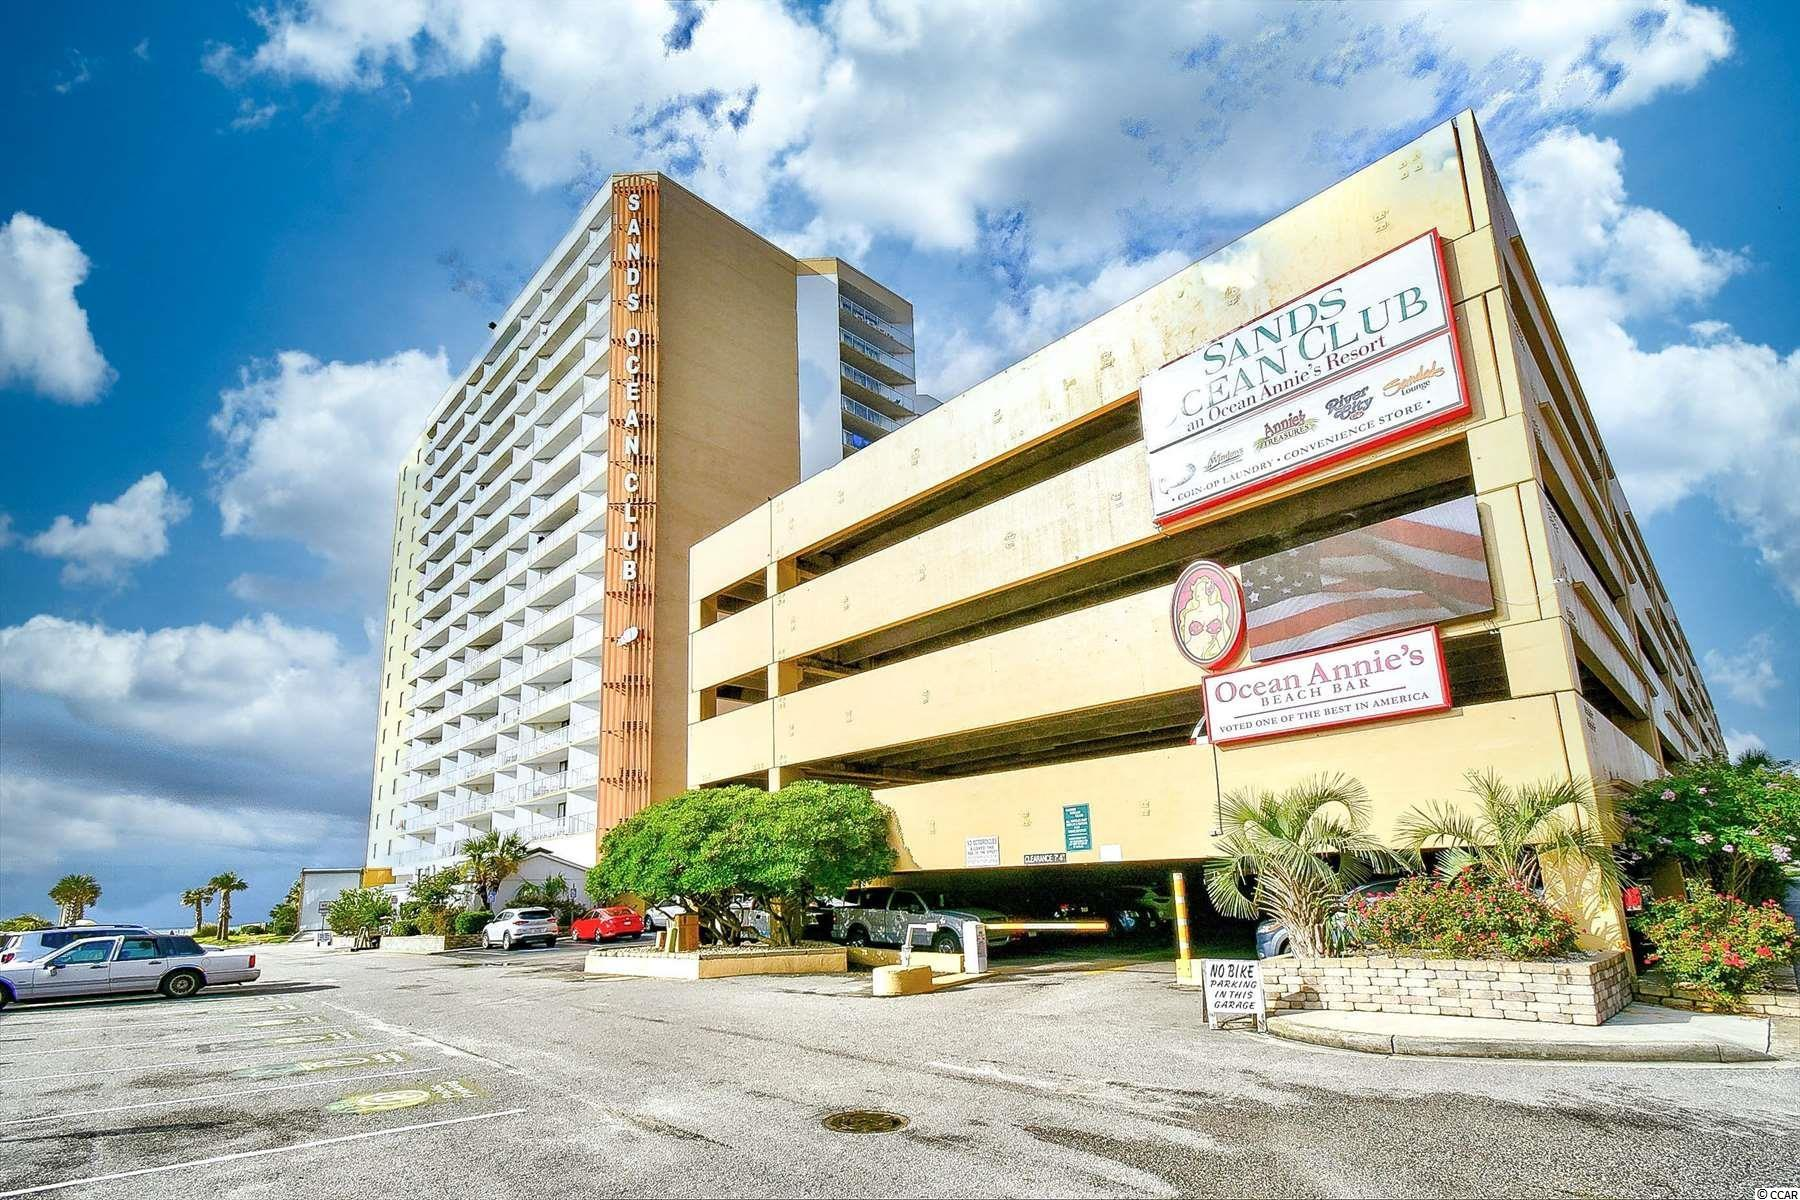 Don't miss your opportunity to own this completely upgraded 1 bedroom, 1 bathroom unit in the Sands Ocean Club.  This unit features LVP flooring throughout the entire unit with recessed lighting and an open floor plan of the main living areas. The kitchen is equipped with all stainless steel appliances, white granite countertops, updated grey cabinetry, and a breakfast bar leading into the living and dining areas. The bedroom also features access to your 2nd floor balcony, along with well coordinated furnishings and decor. Enjoy the beautiful ocean views from your 2nd floor balcony, and spend your afternoons at the many resort amenities. Sands Ocean Club offers indoor and outdoor pools, hot tubs, lazy river, onsite dining, laundry and exercise facilities, and more! Excellent rental potential and ready to move in or start renting. Whether you are looking for a second home on the beach or your next investment opportunity, you won't want to miss this. Schedule your showing today!